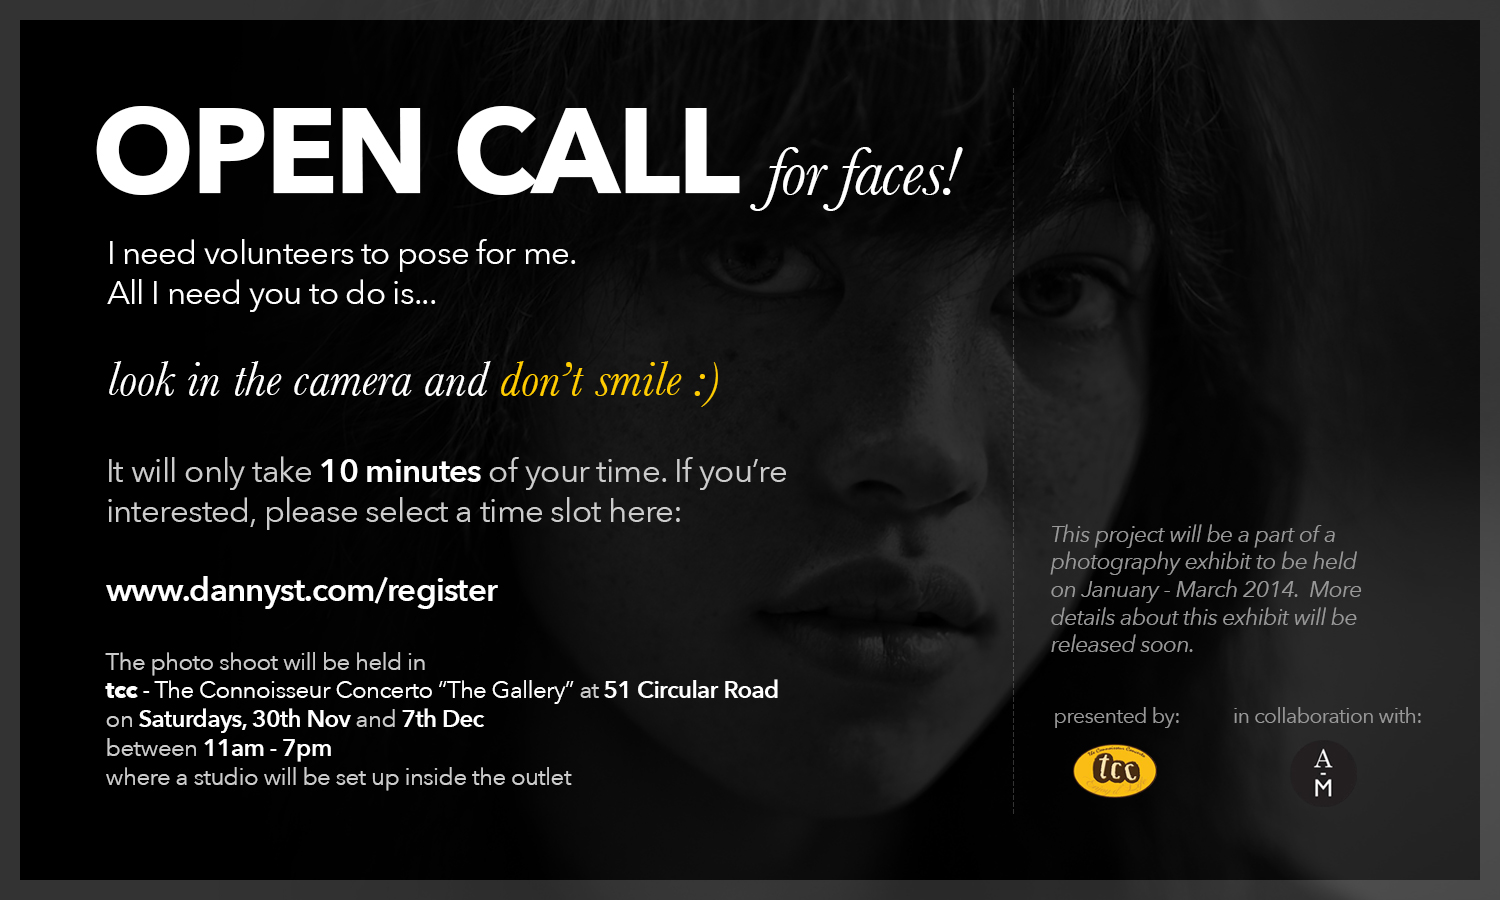 Open Call for Faces